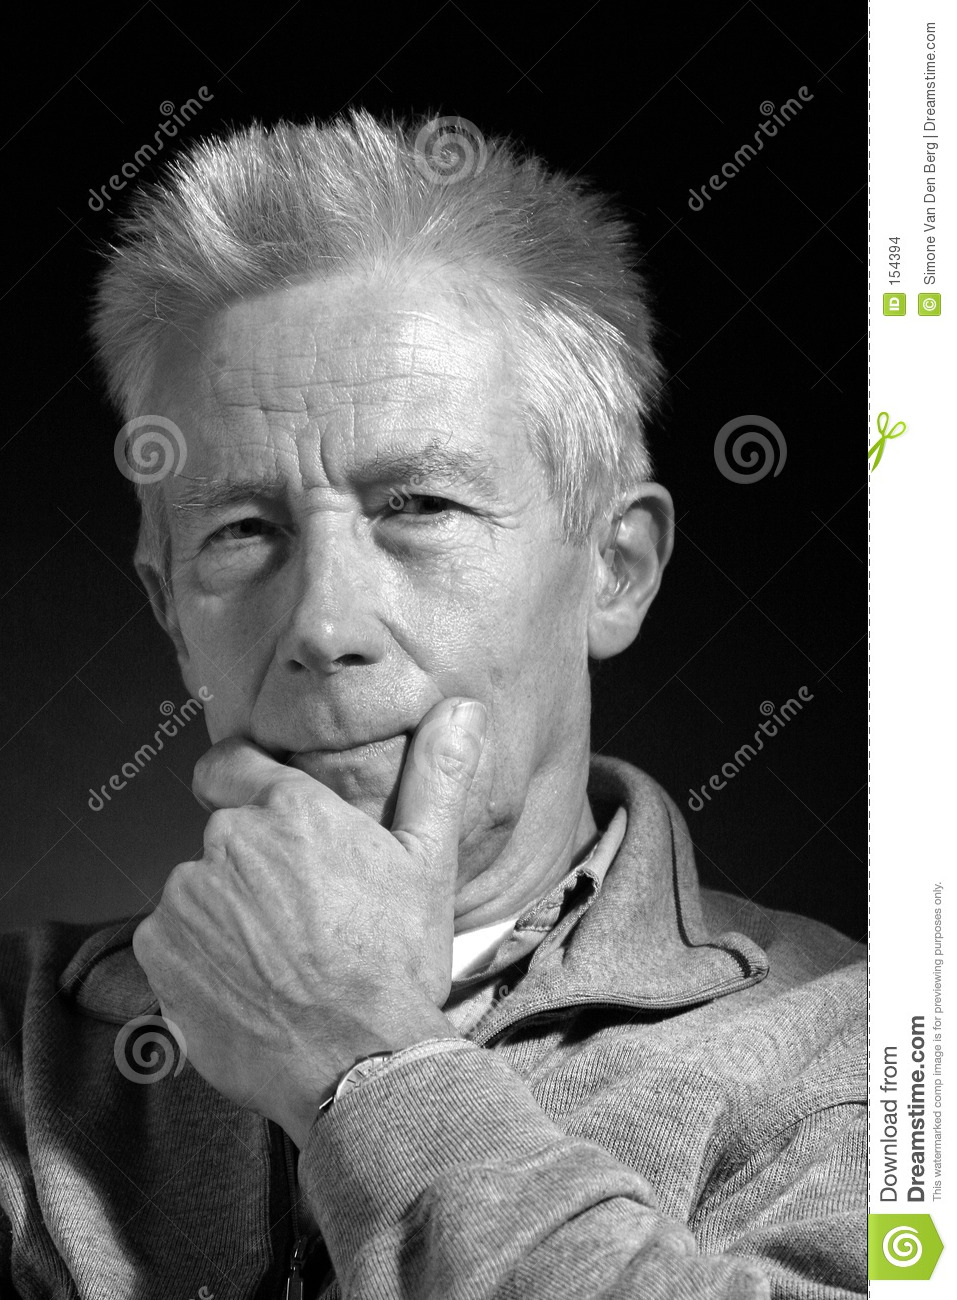 Thoughtful older man